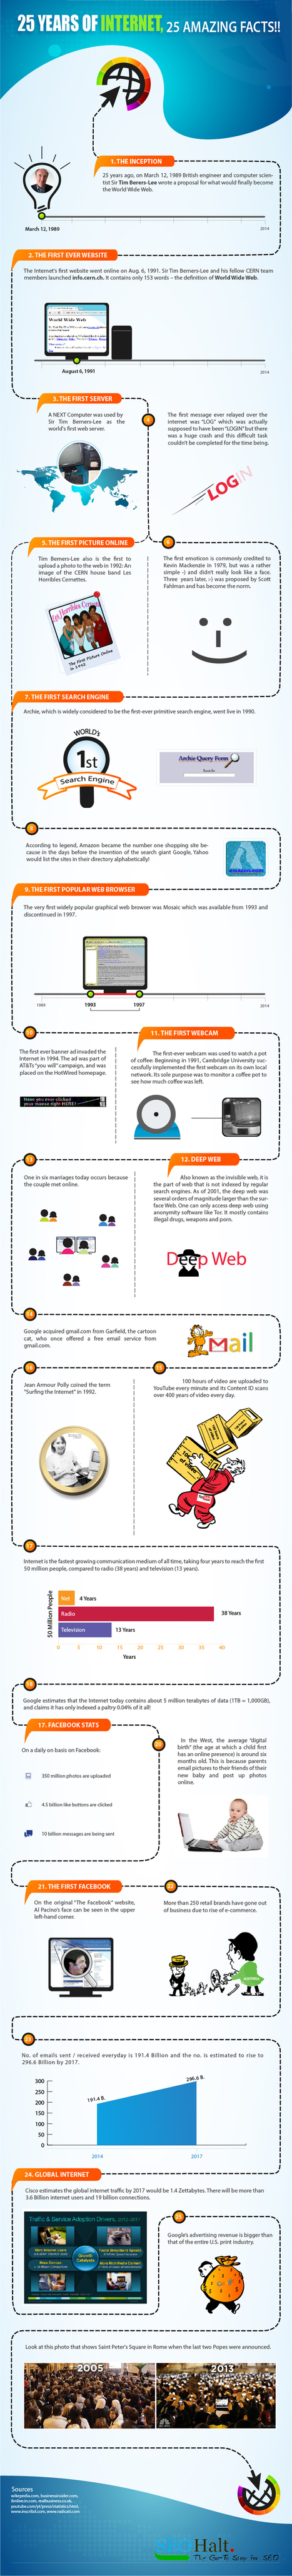 25 Amazing Facts about the Internet [Infographic] | digital marketing strategy | Scoop.it